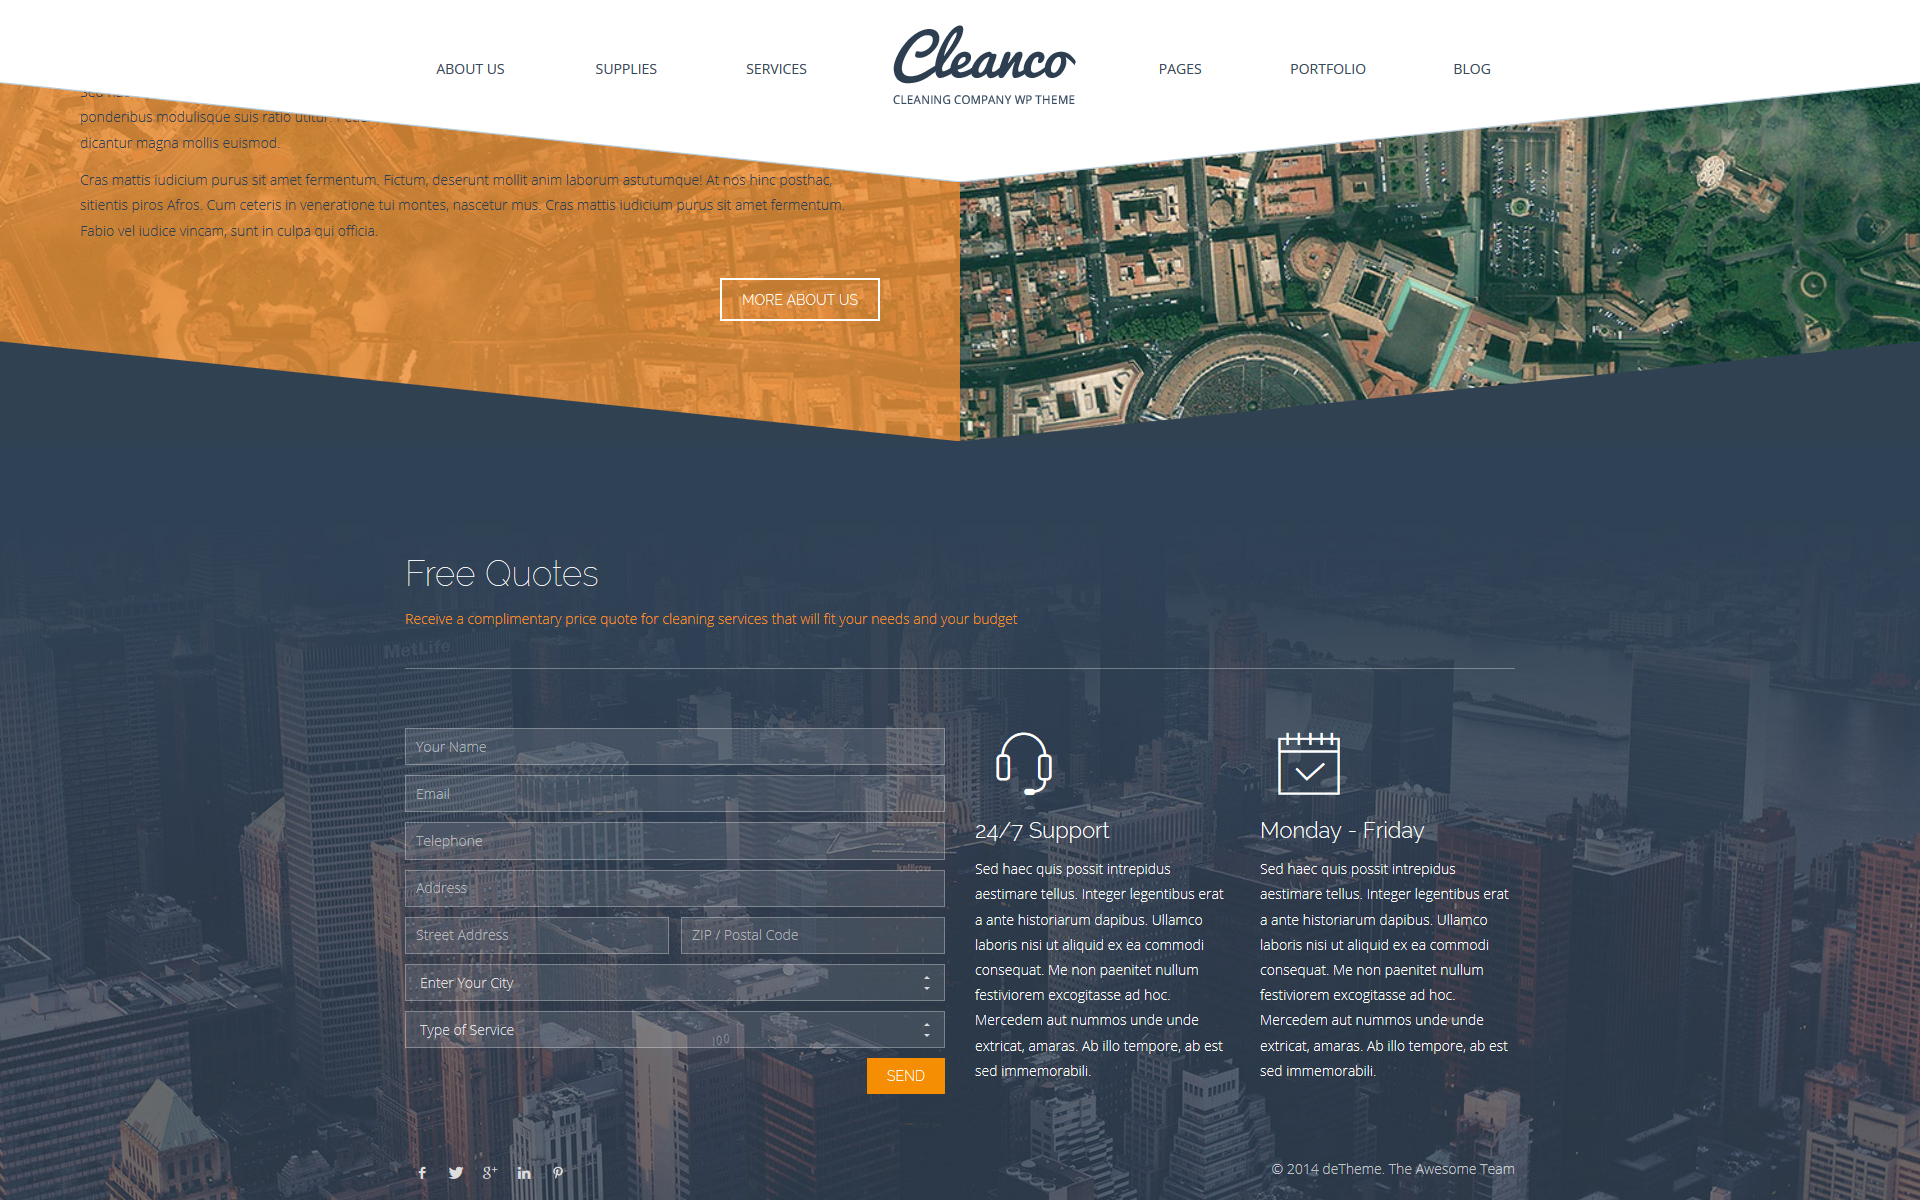 nddemos-cleanco-footer-1920x1200